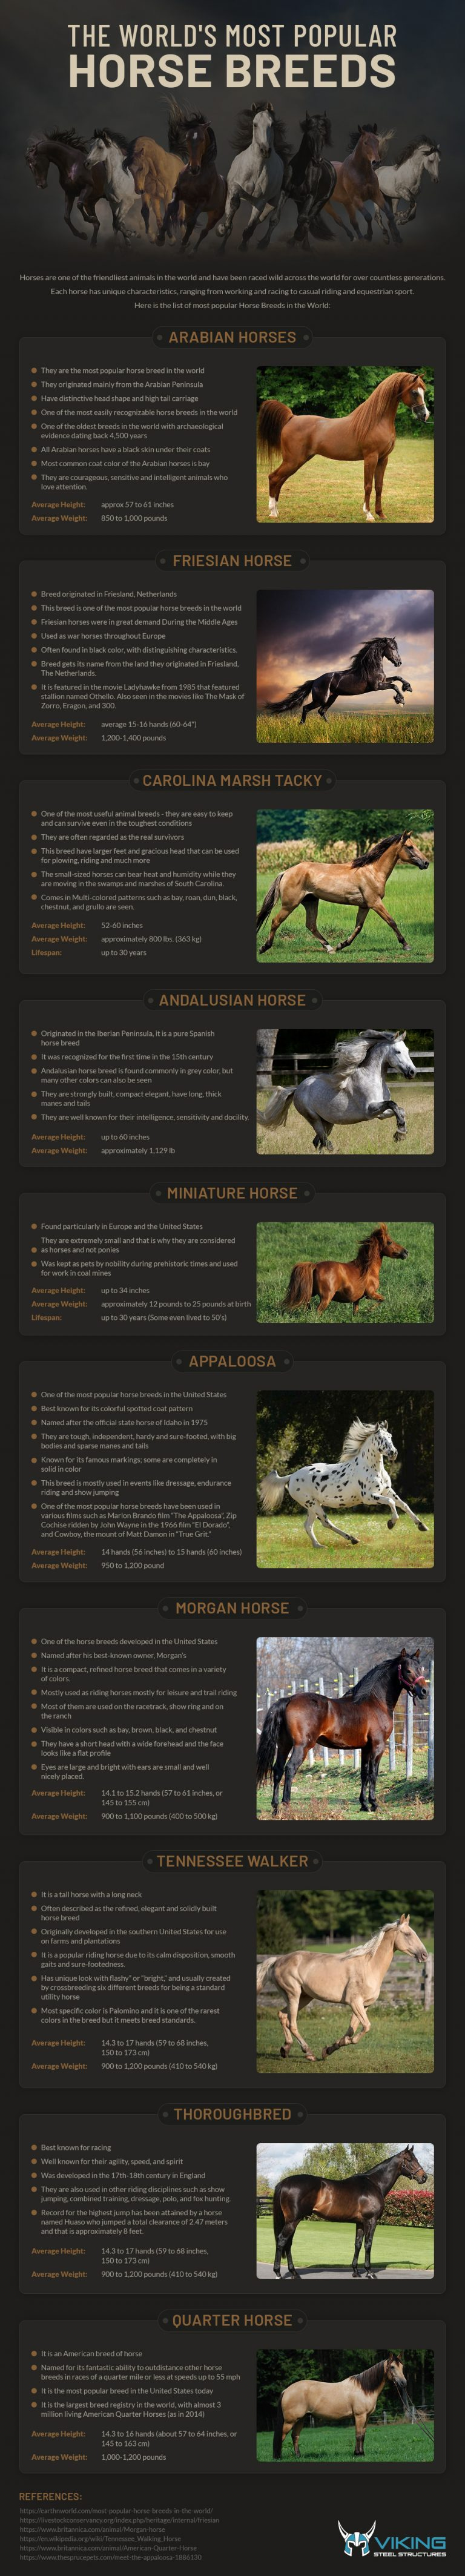 The World's Most Popular Horse Breeds